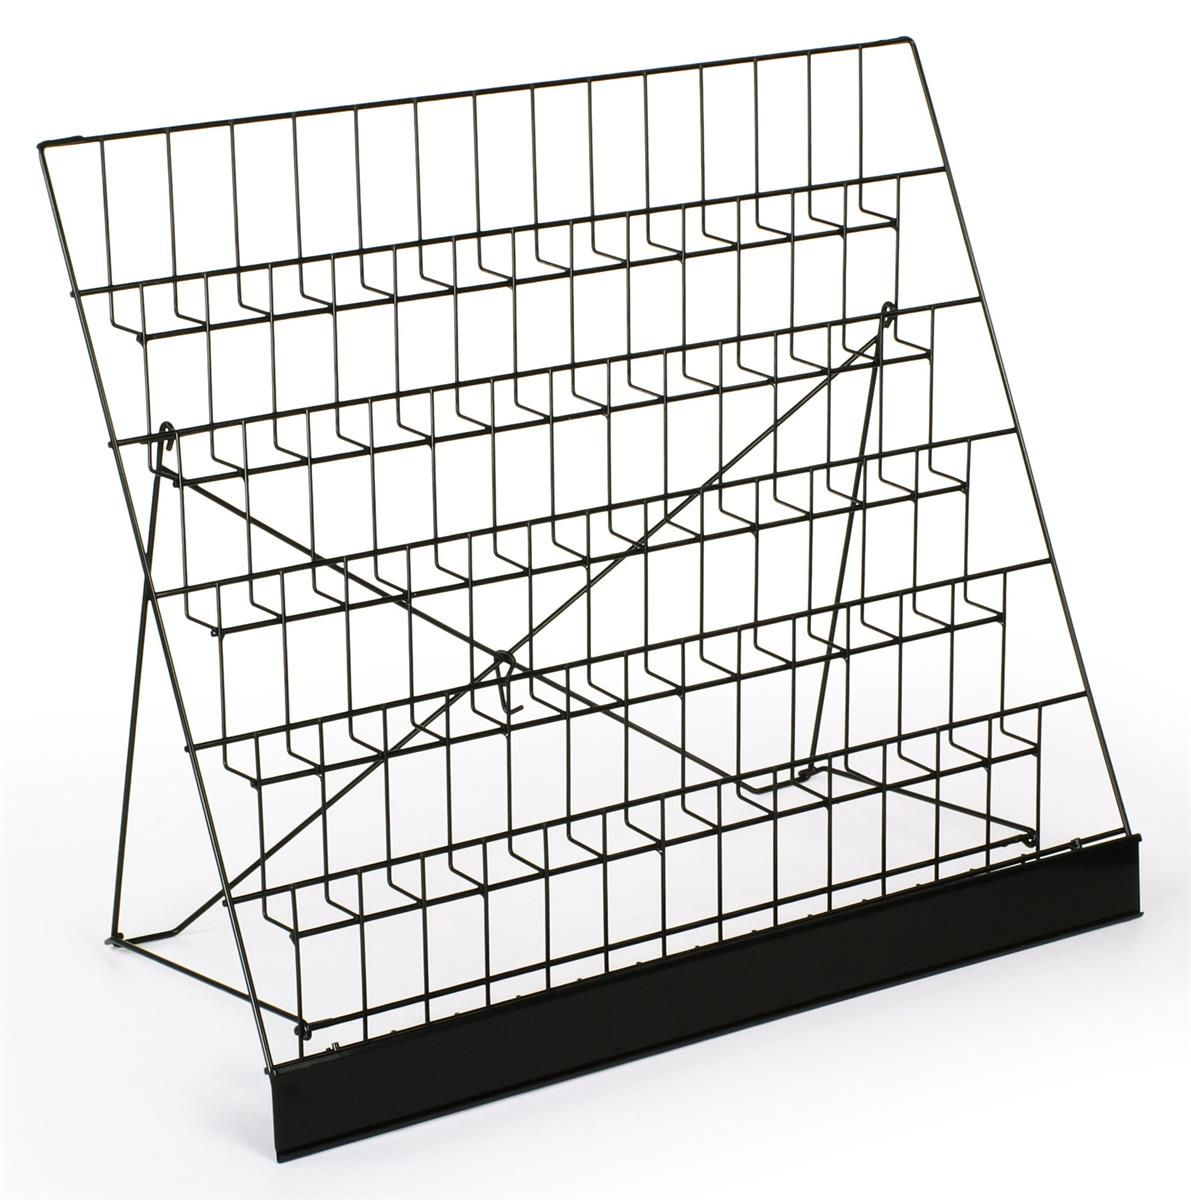 6 Tiered 29 Wire Display Rack For Tabletops 2 5 Open Shelves